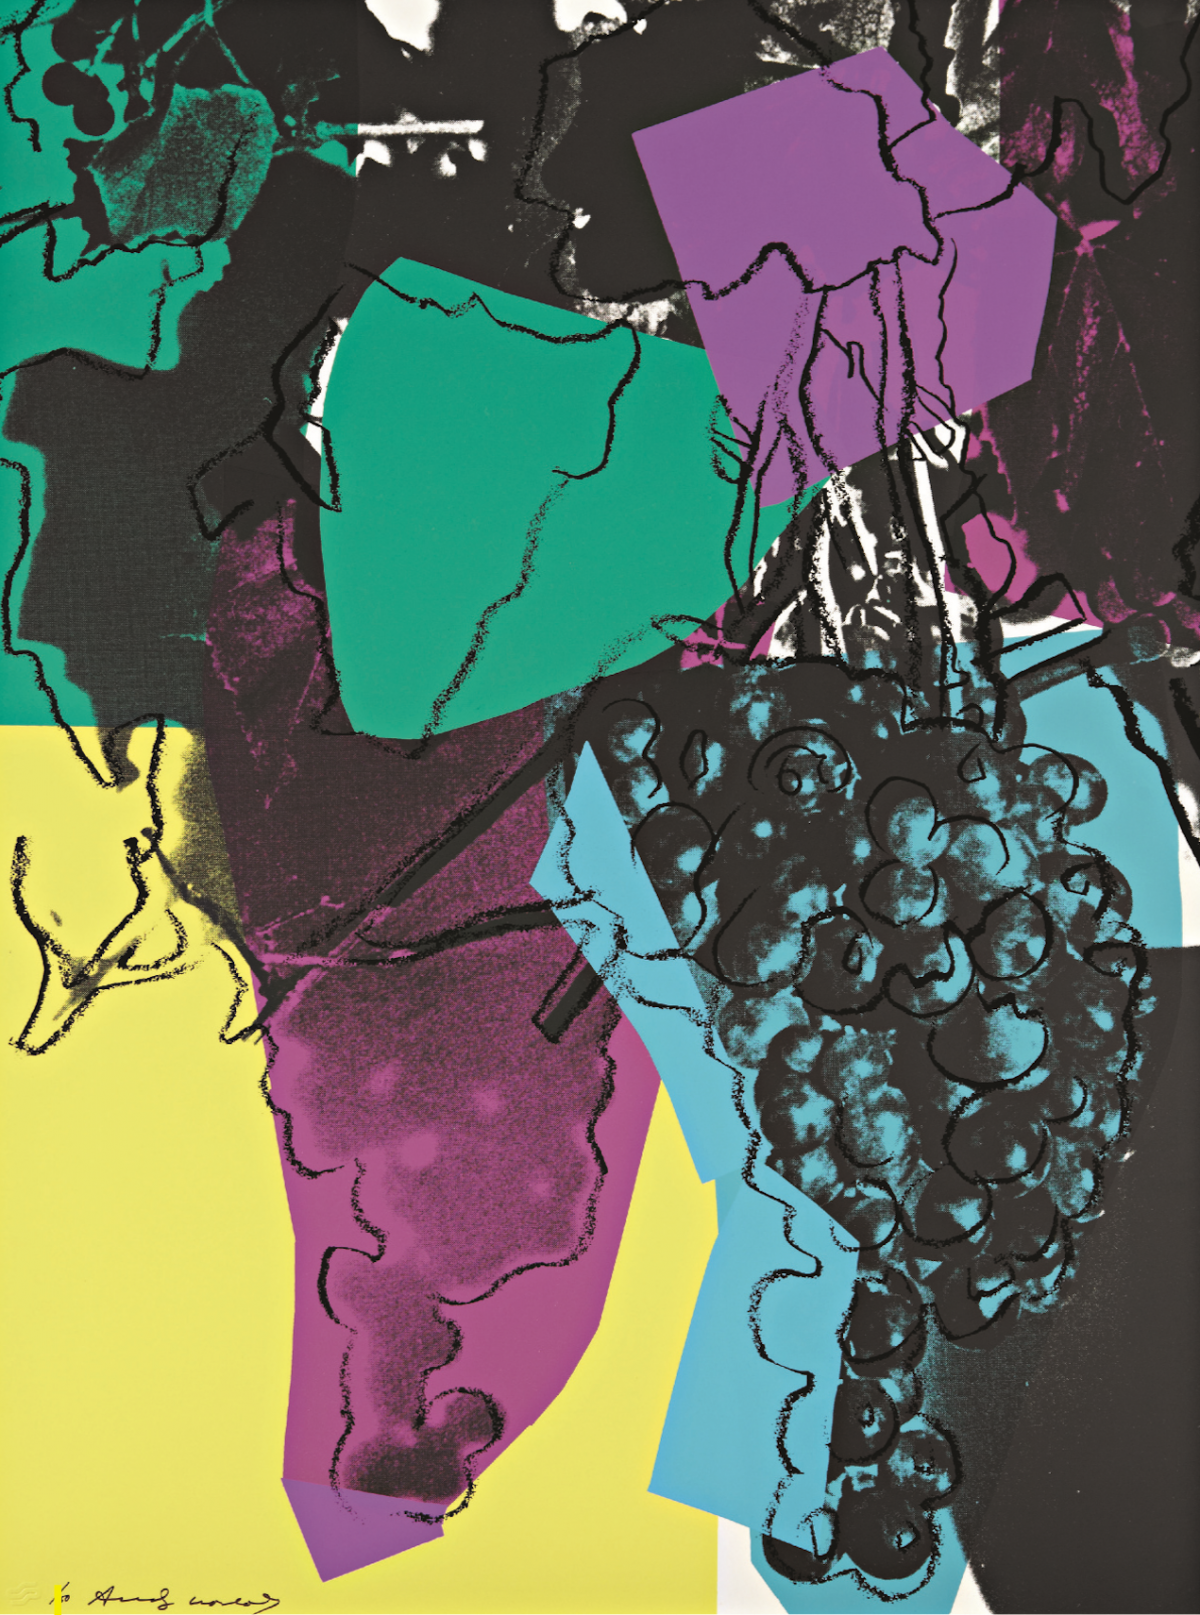 Andy Warhol | Grapes 195 | 1979 | Image of Artists' work.